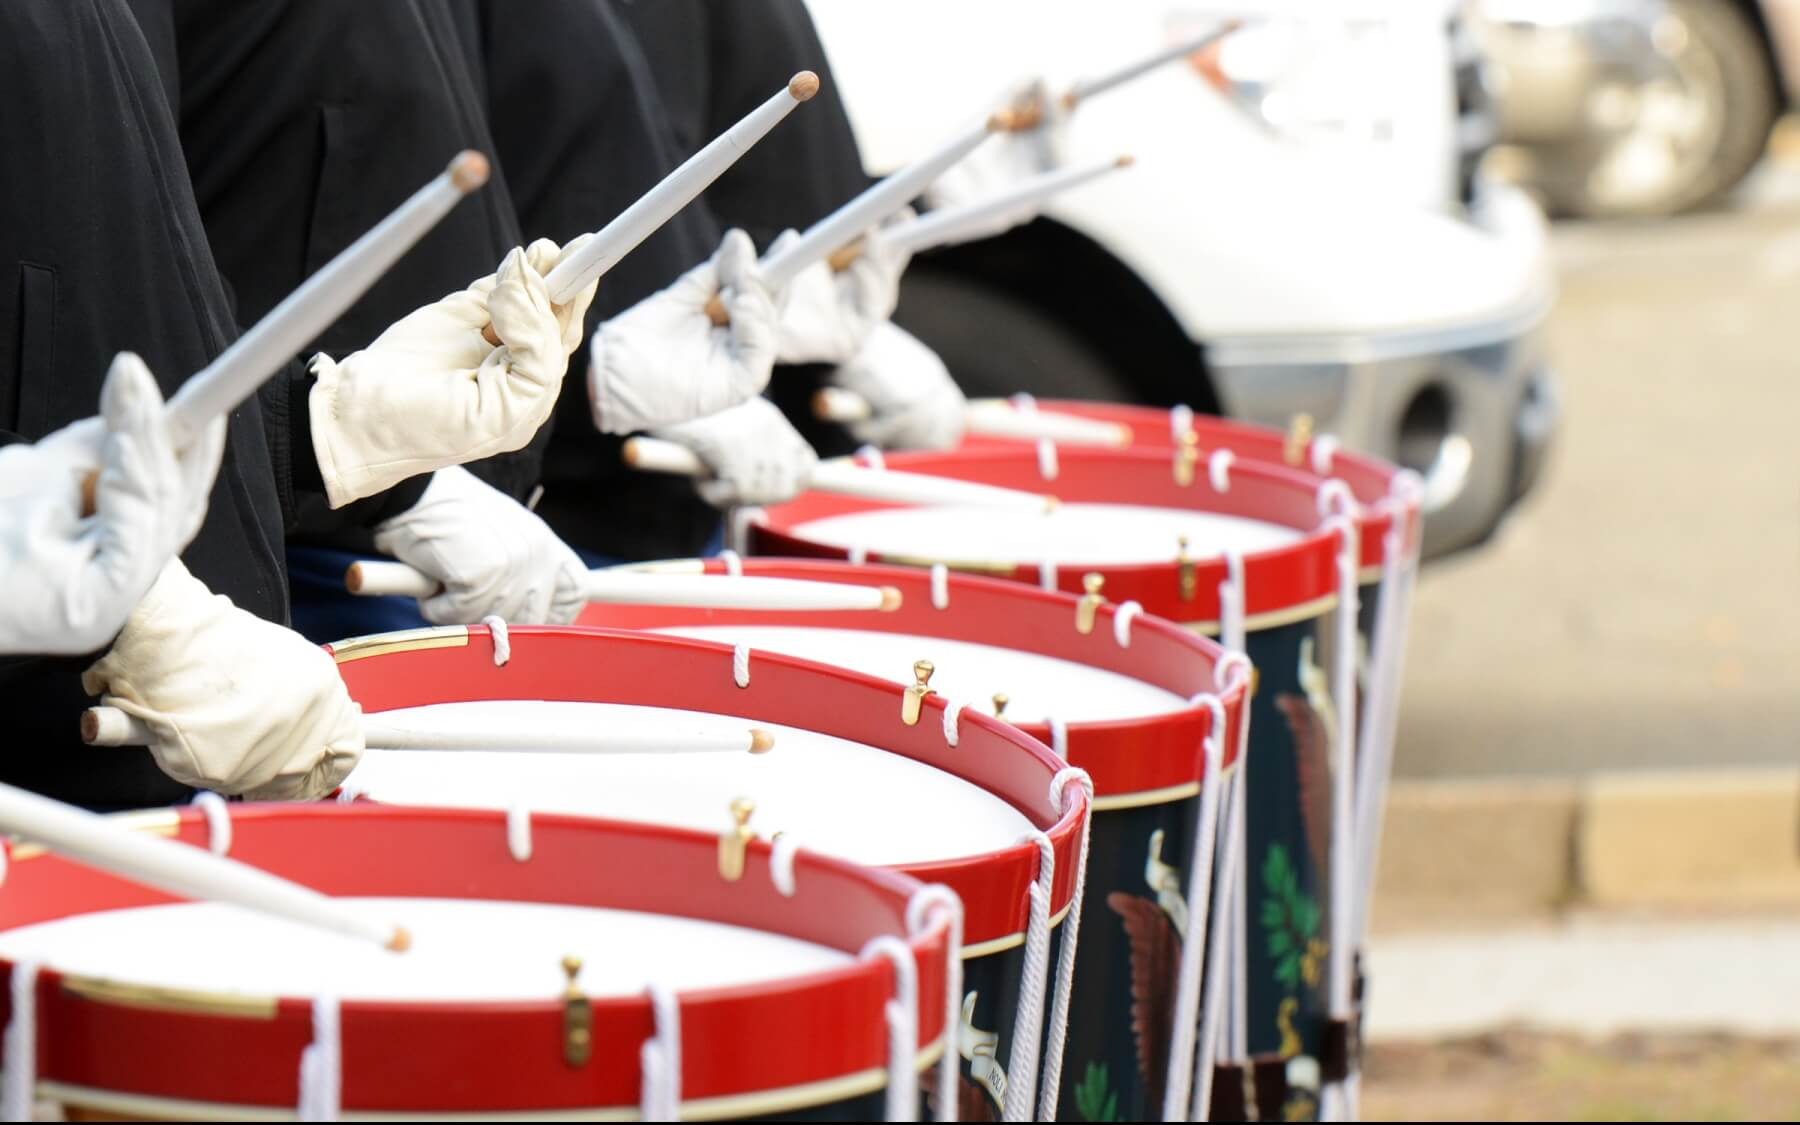 Drum- en showfanfare Advendo